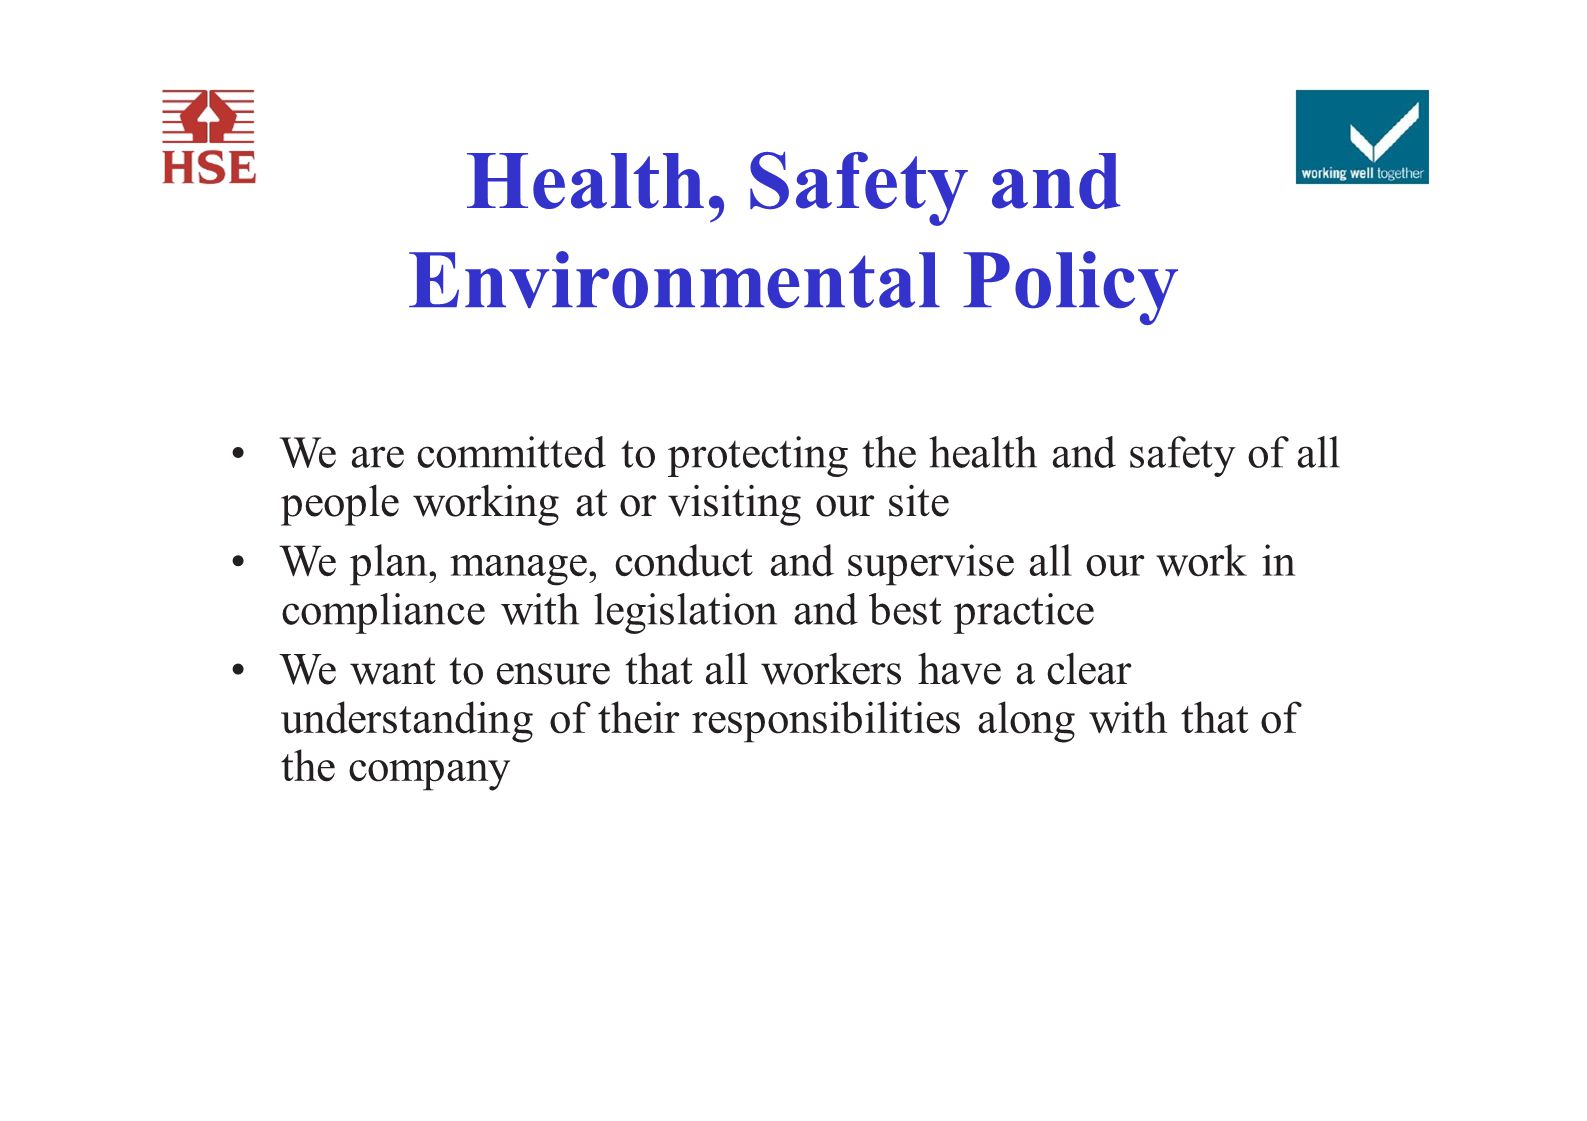 Health, Safety and Environmental Policy We are committed to protecting the health and safety of all people working at or visiting our site We plan, ma